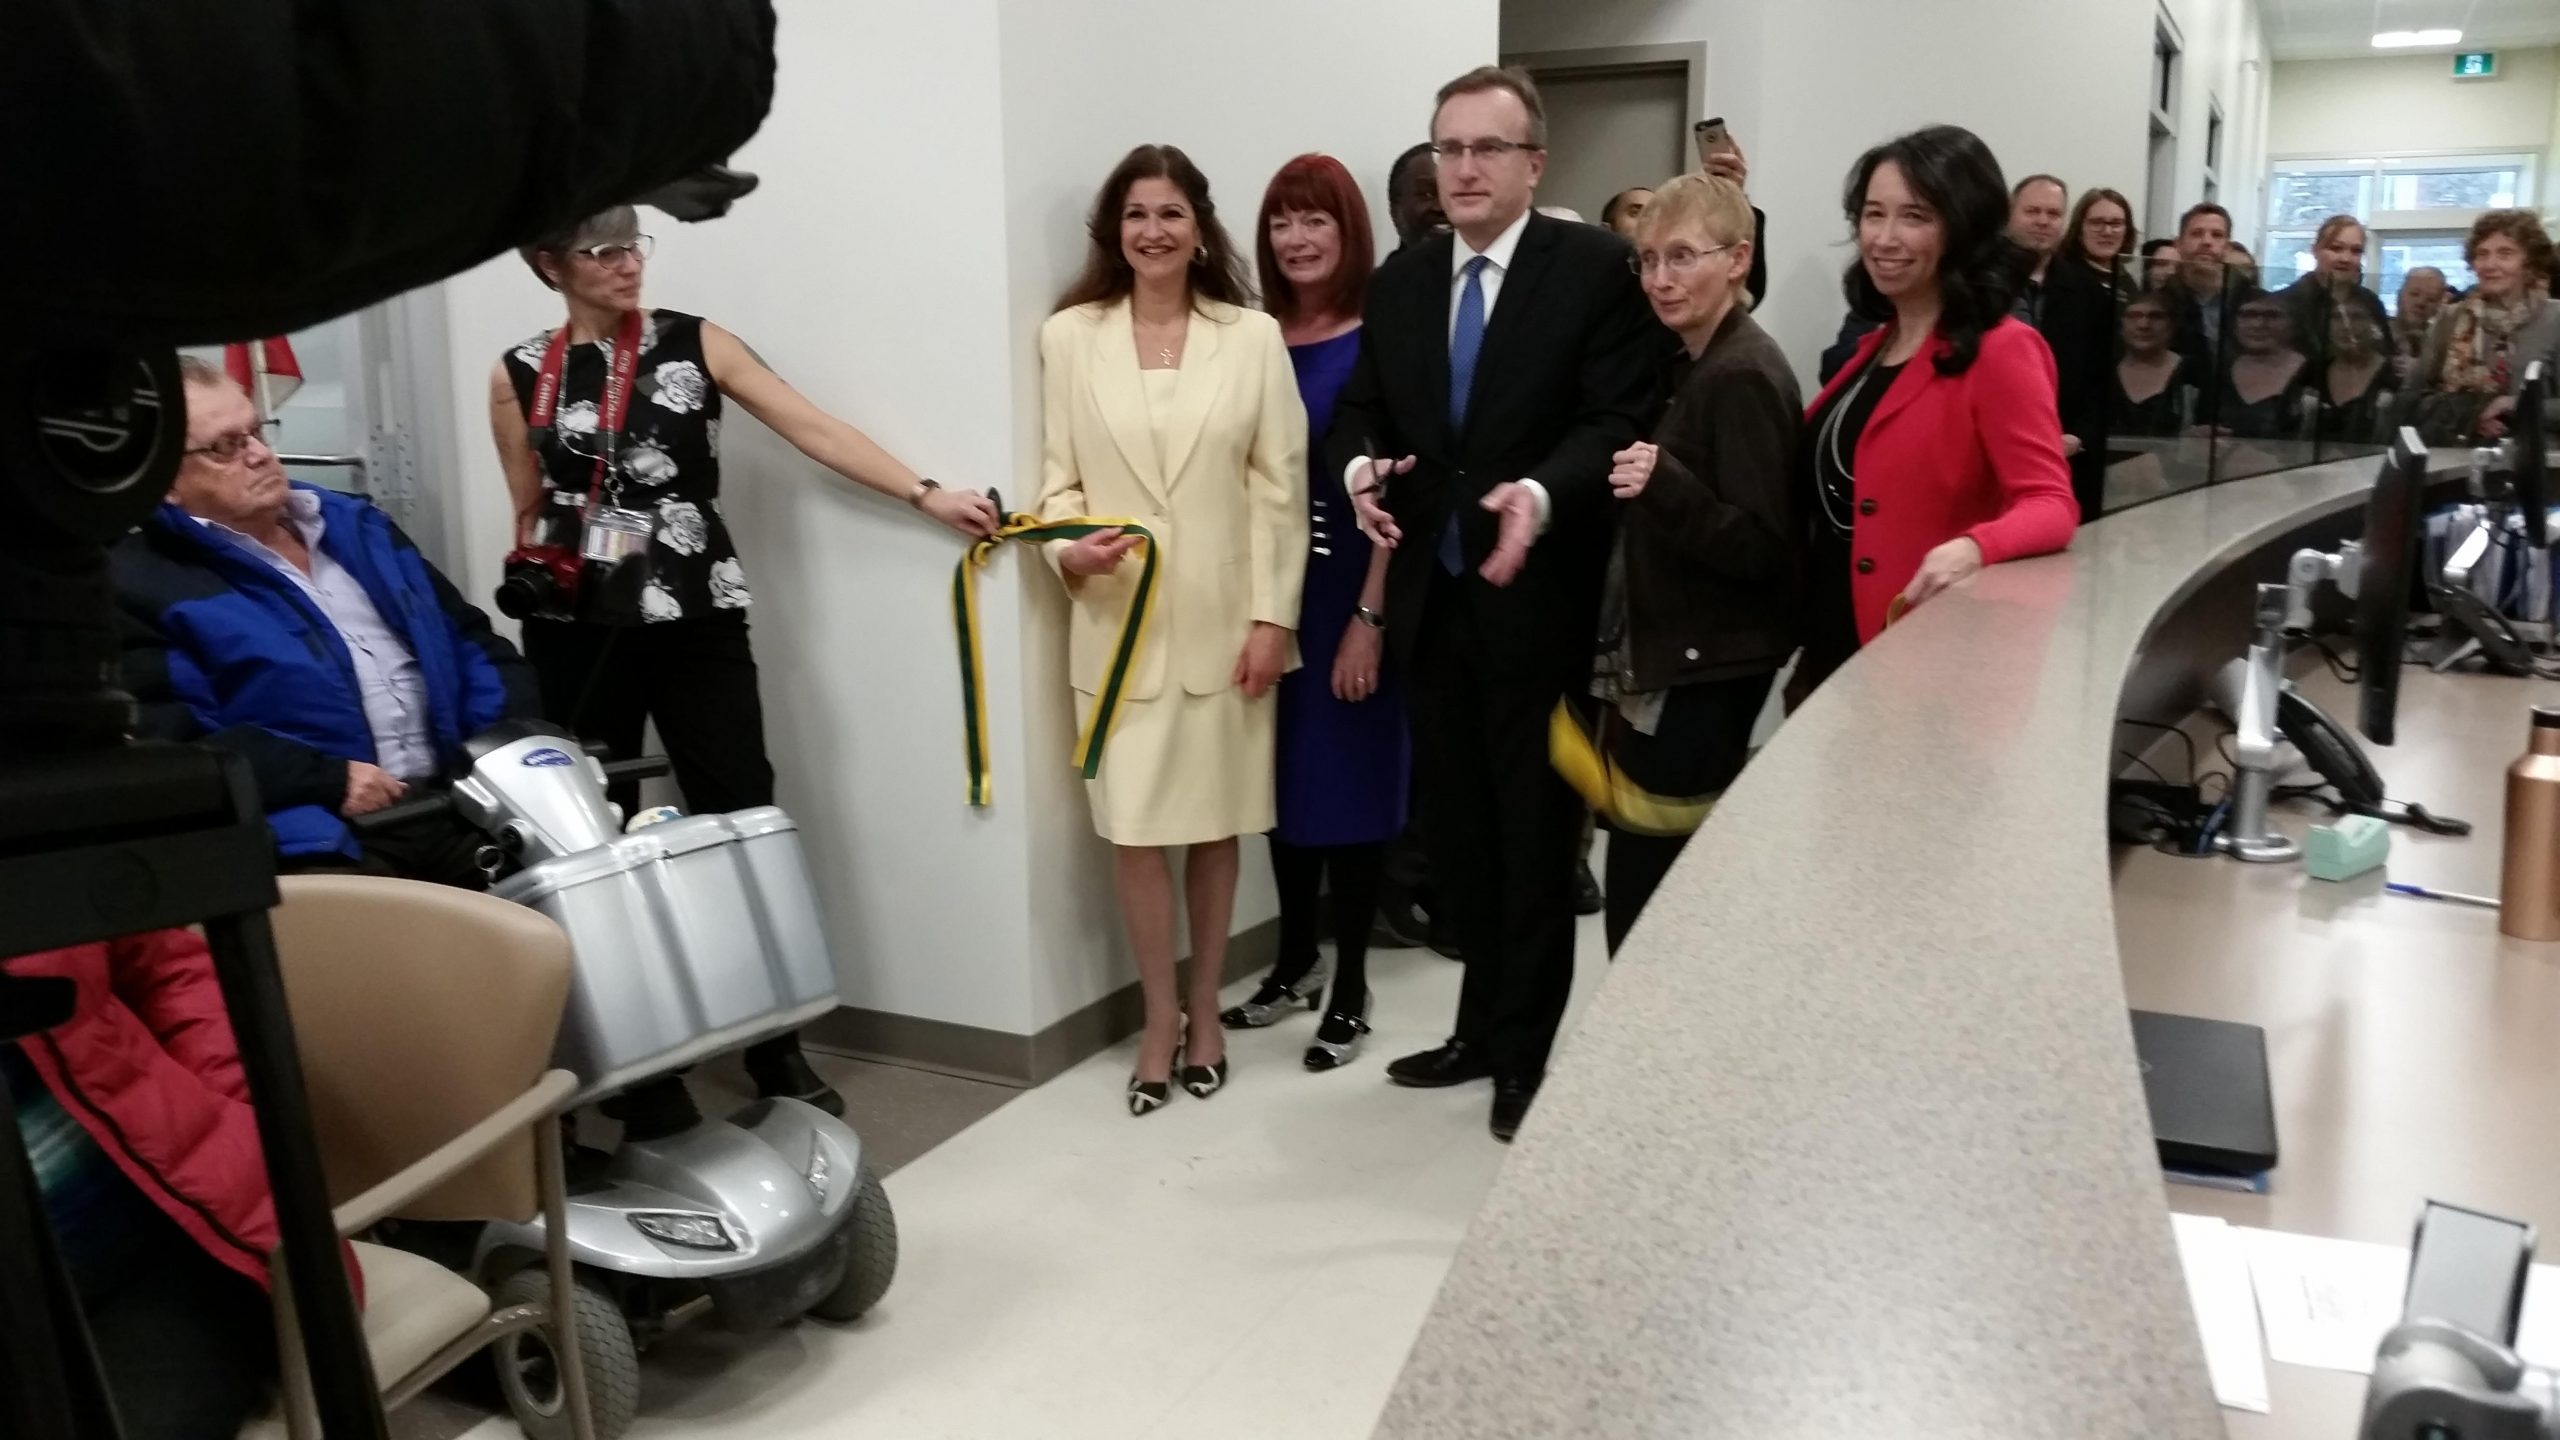 Integrated seniors health centre opens in Market Mall